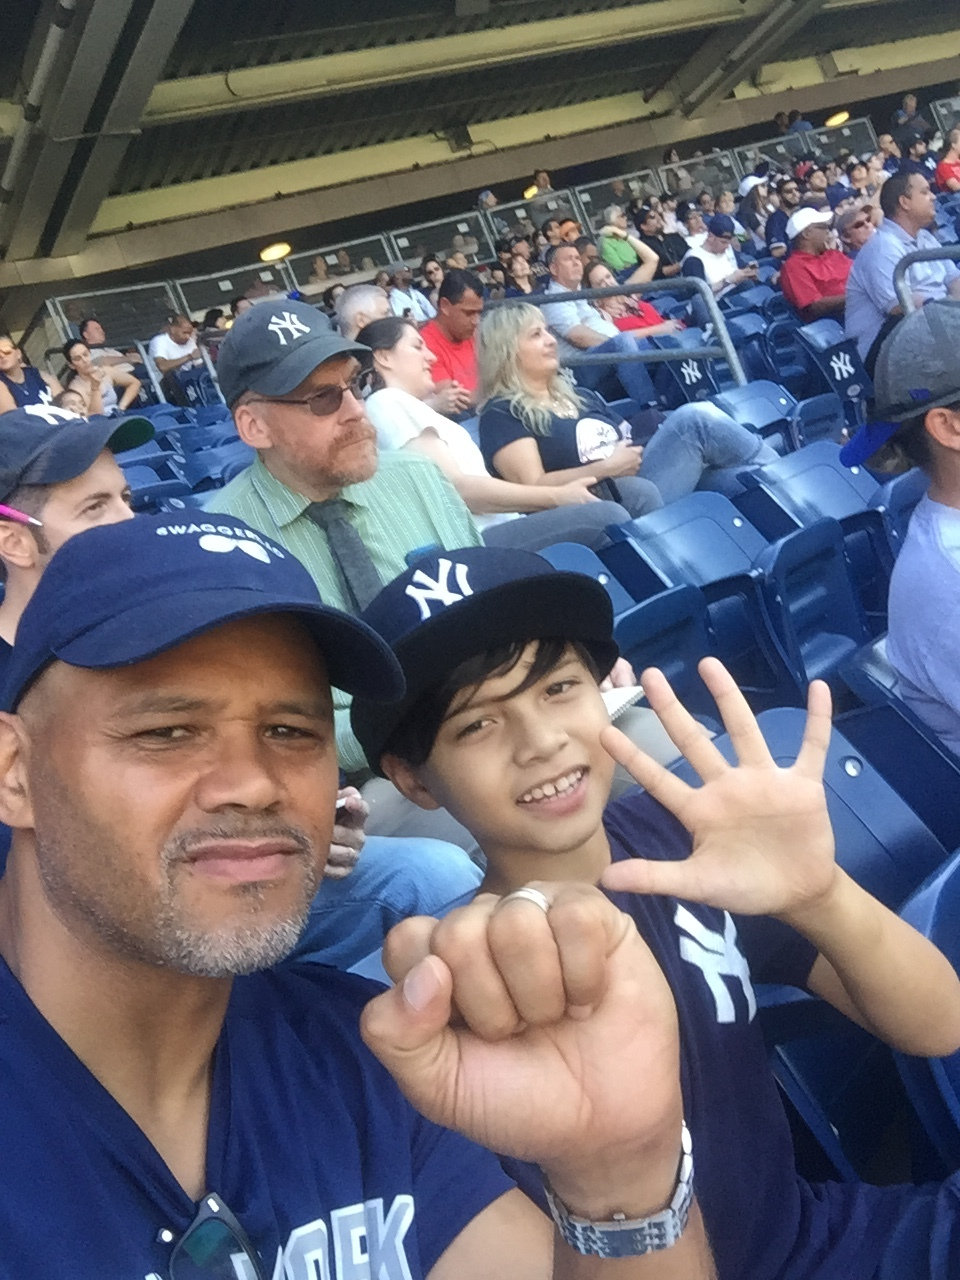 My Son and I at the Arron Judge 50 HR game